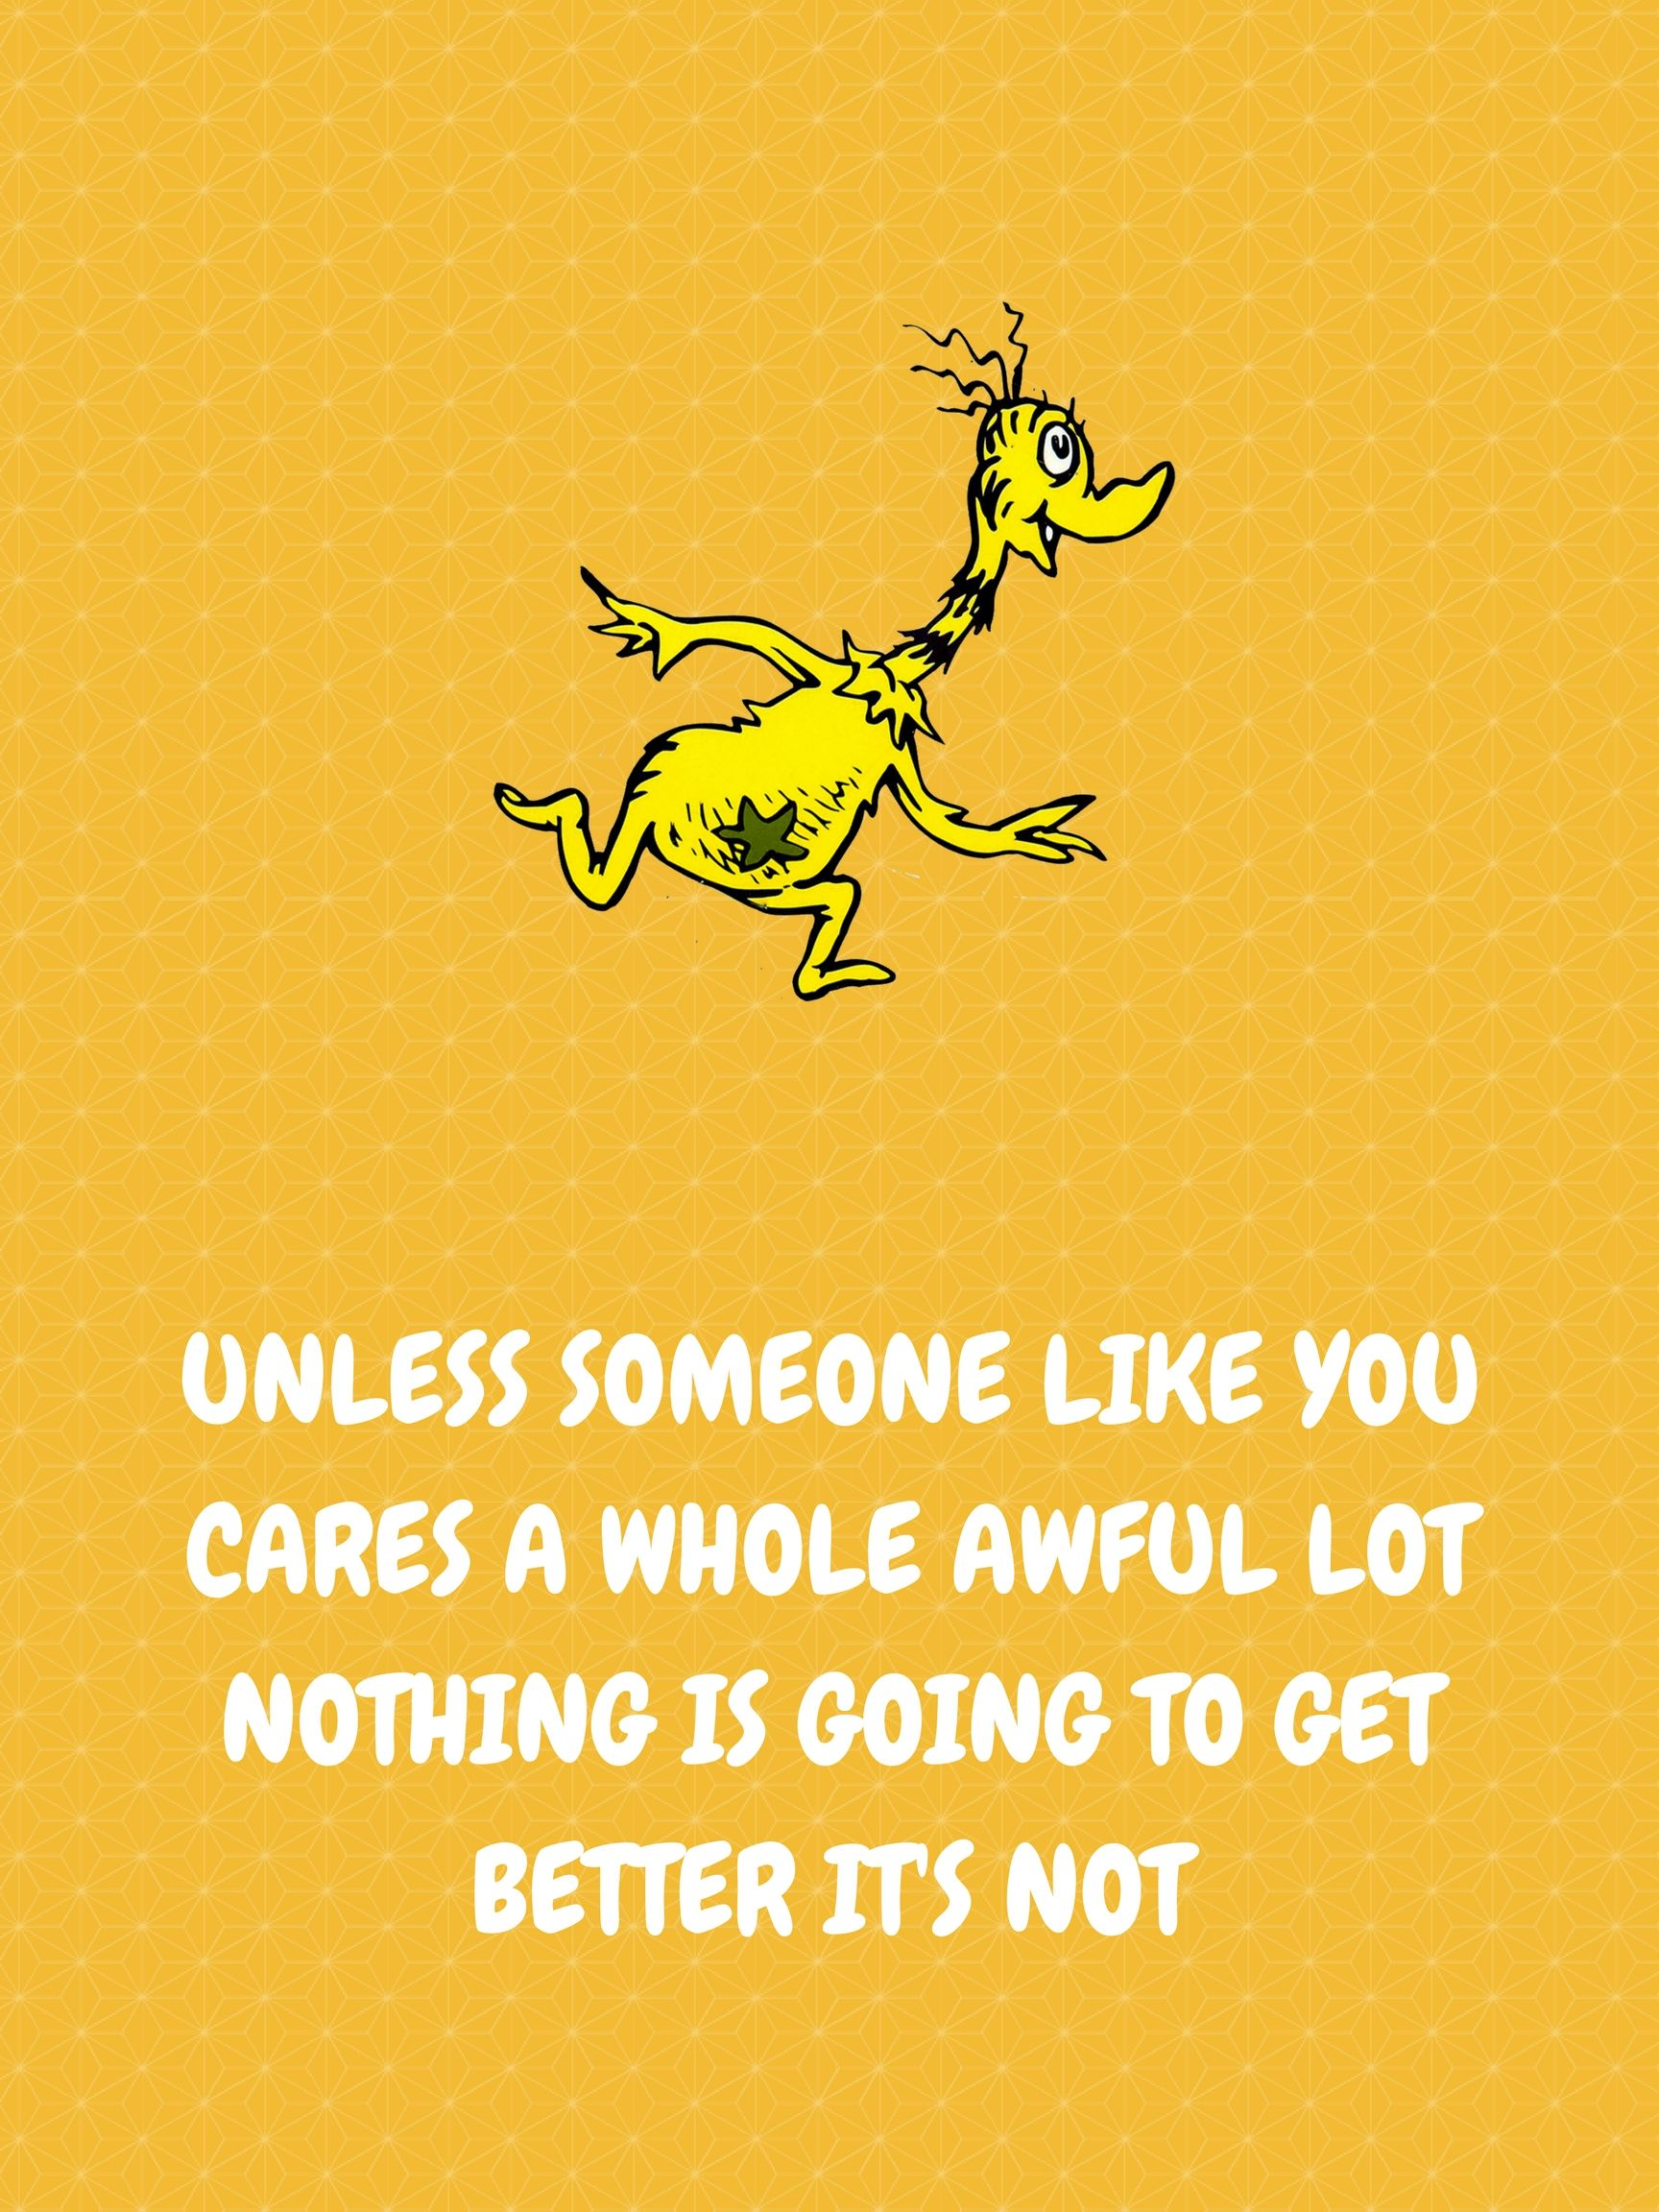 Dr seuss themed yw value poster someone like you new